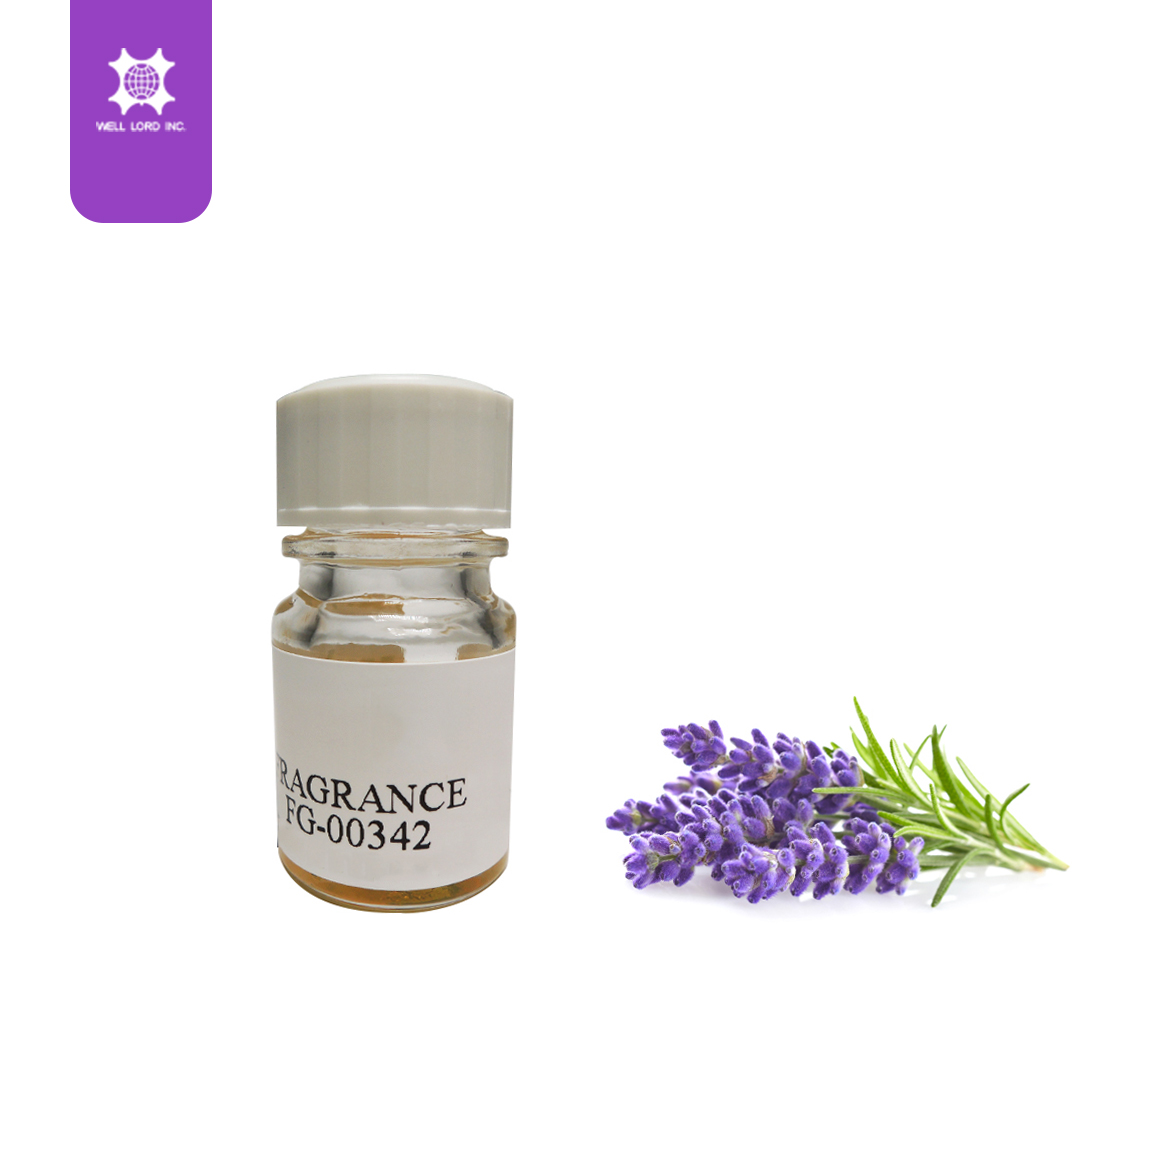 Longer lasting recognizable natural flower blossom aromatic branded fragrance oil perfume